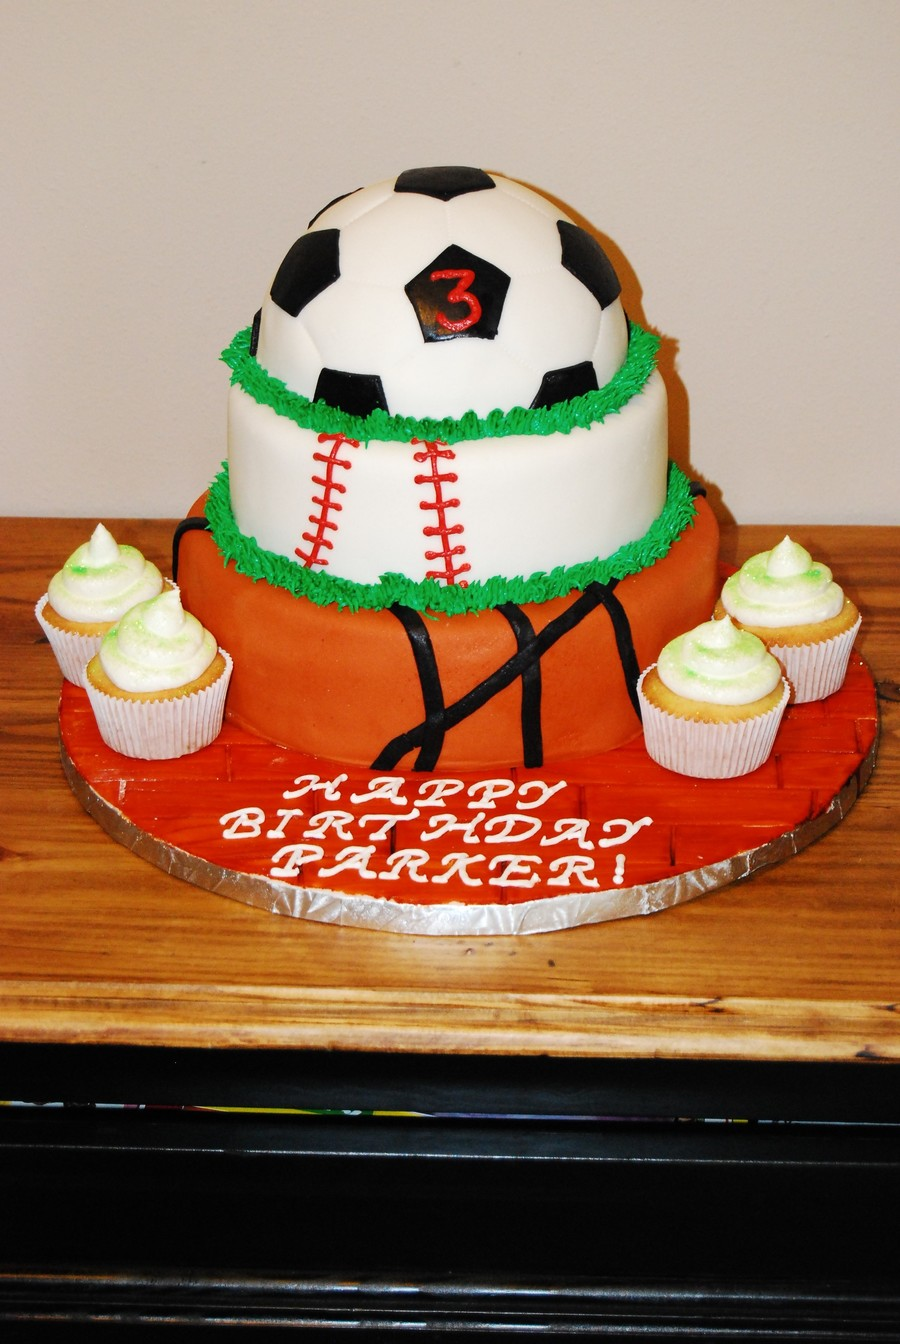 Astounding Sports Themed Birthday Cake Cakecentral Com Funny Birthday Cards Online Alyptdamsfinfo